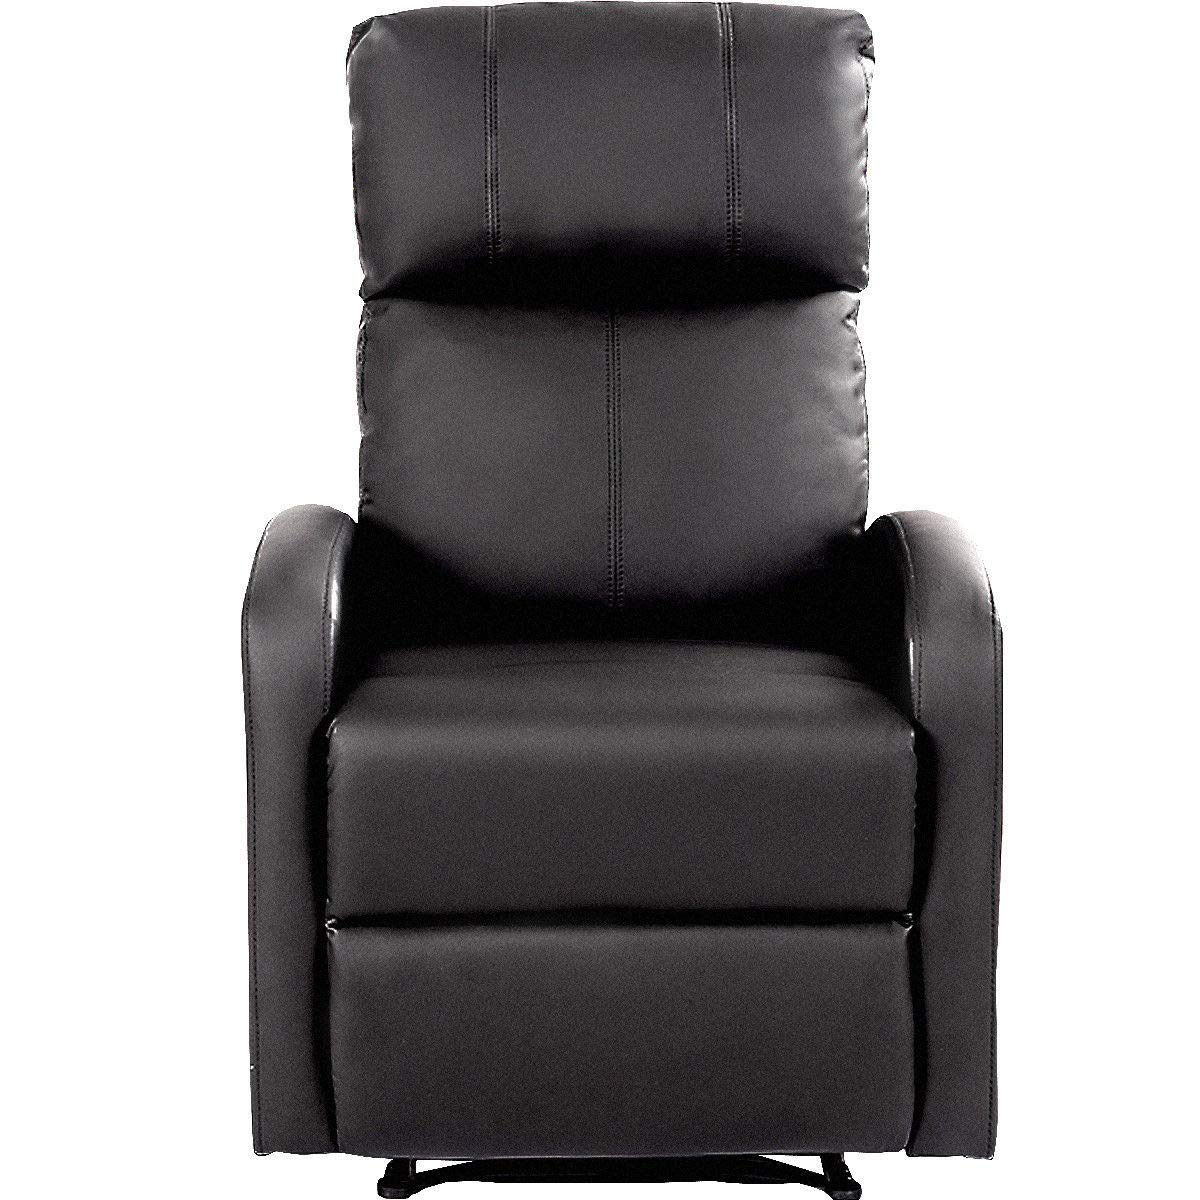 GHP 330-Lbs Capacity Black Leather Push-Back Recliner Chair with Padded Cushion